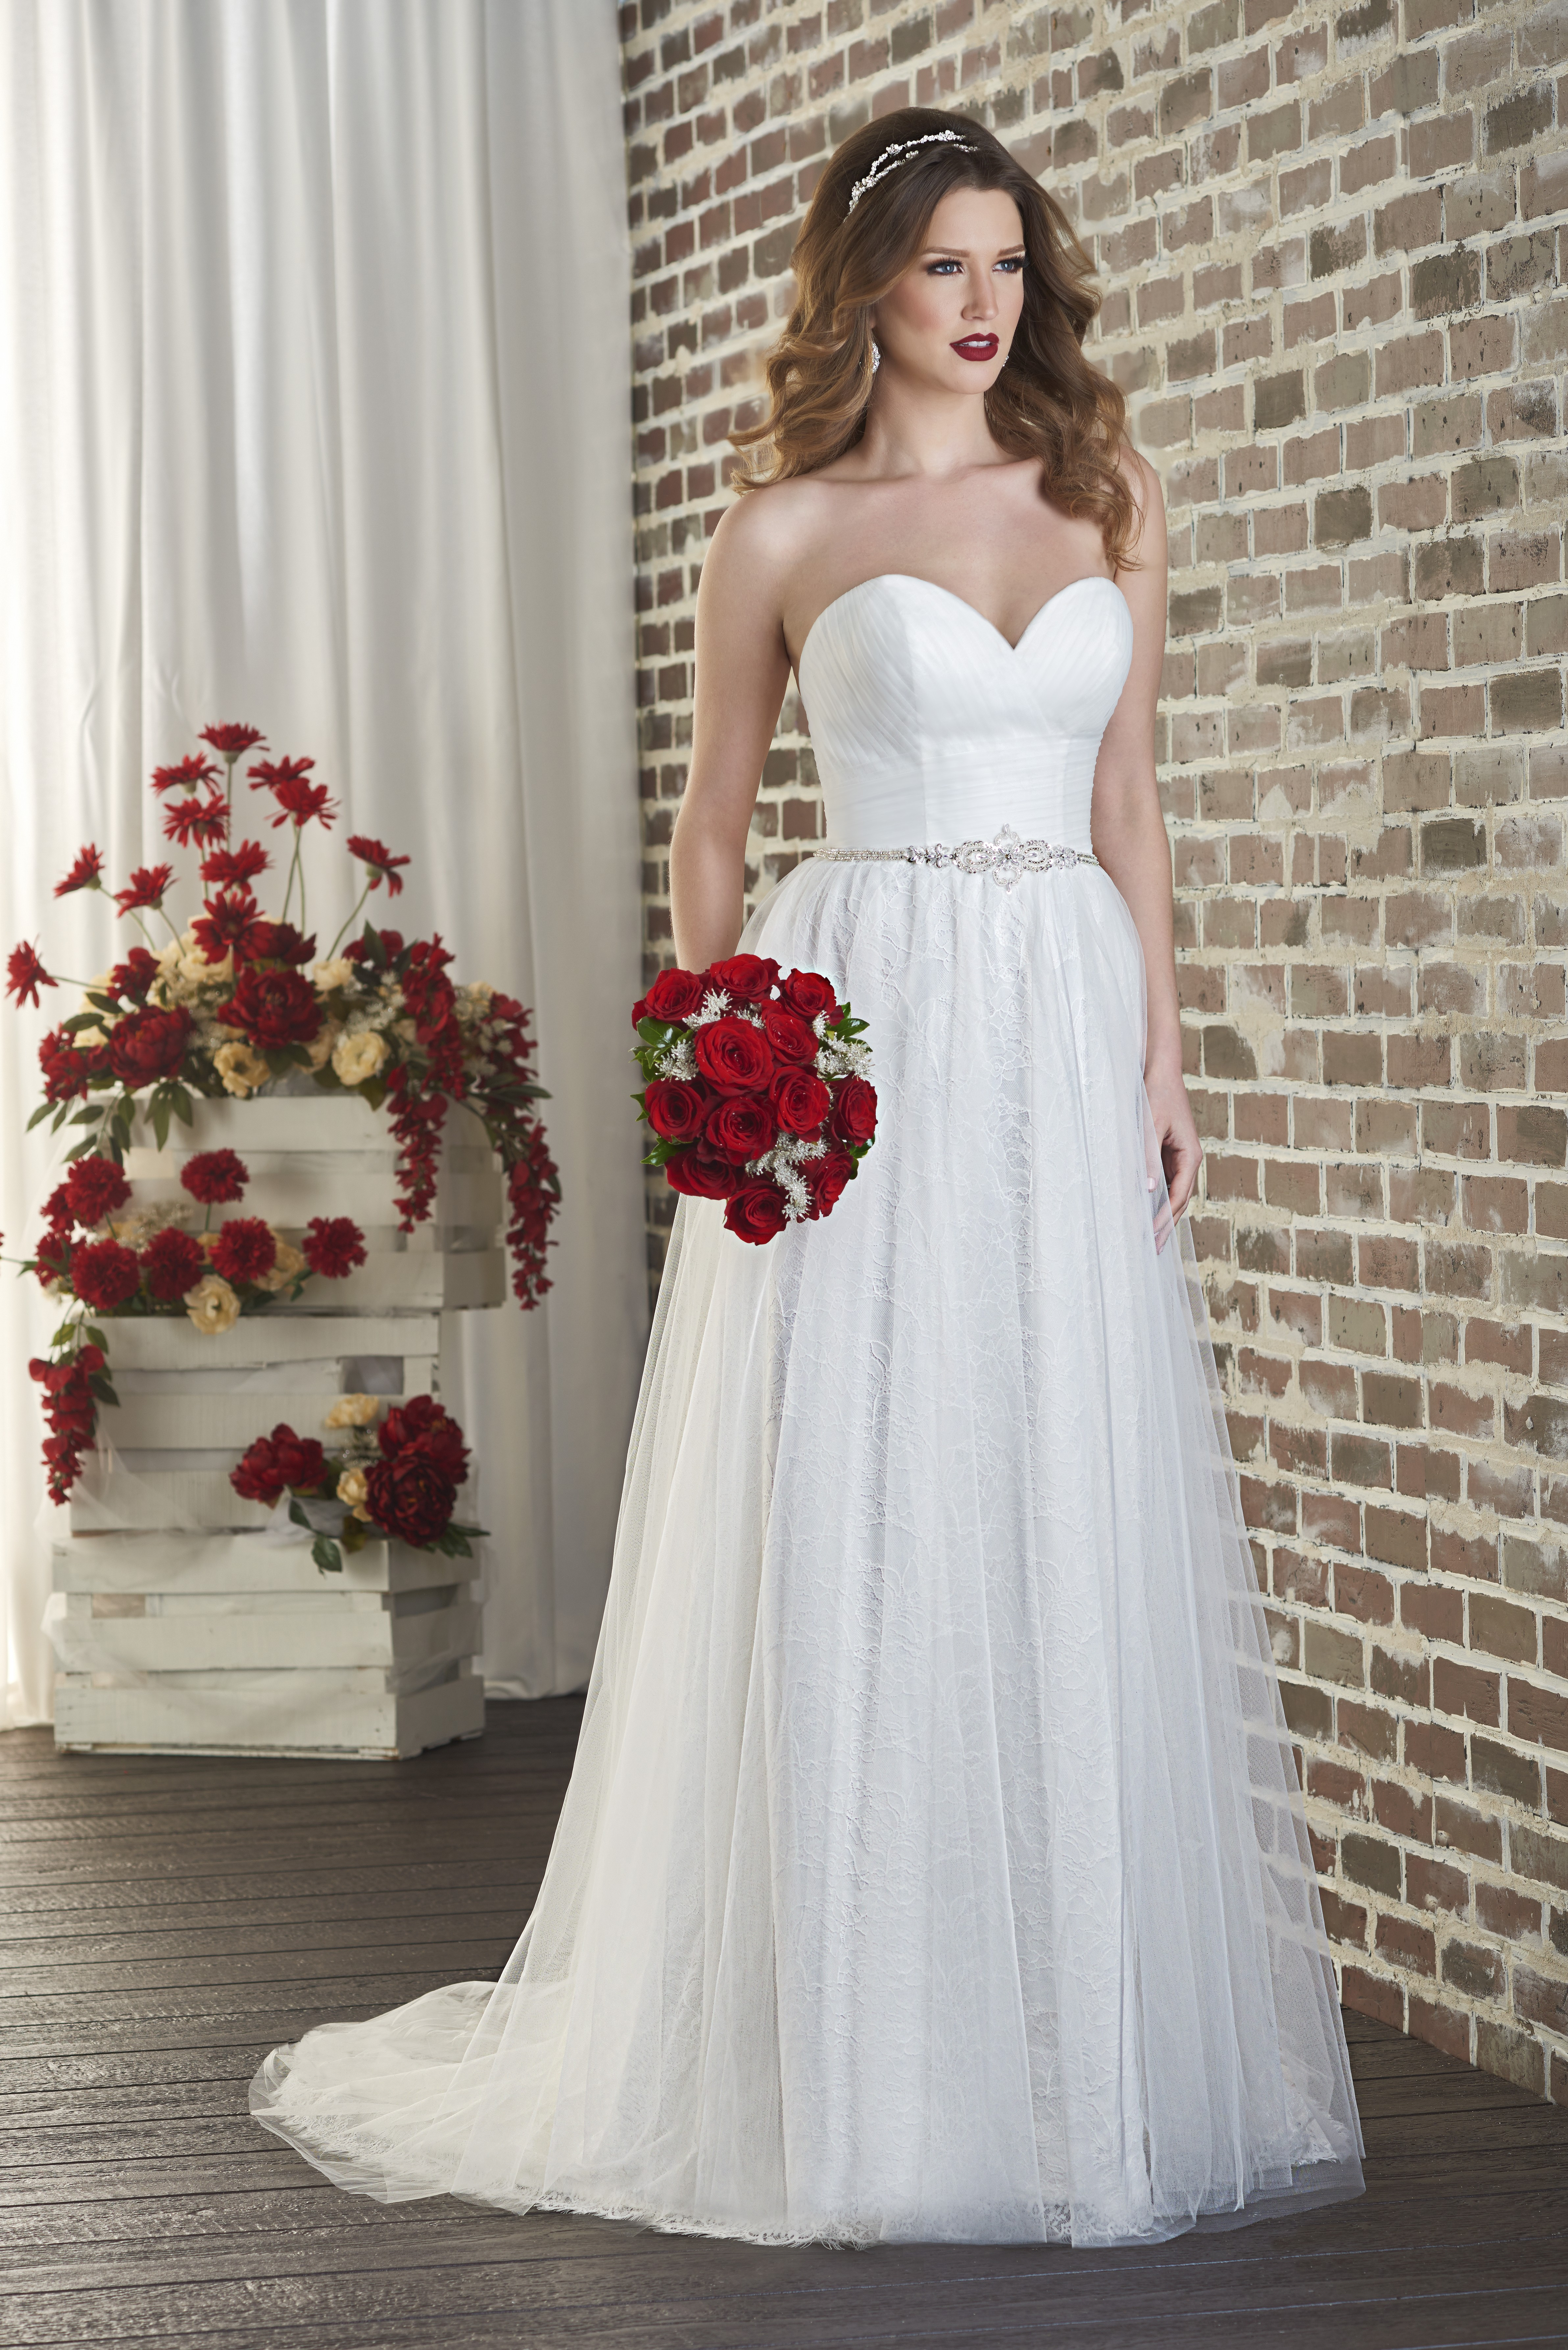 Destination wedding dresses from the Love collection by Bonny Bridal  Love Our Wedding